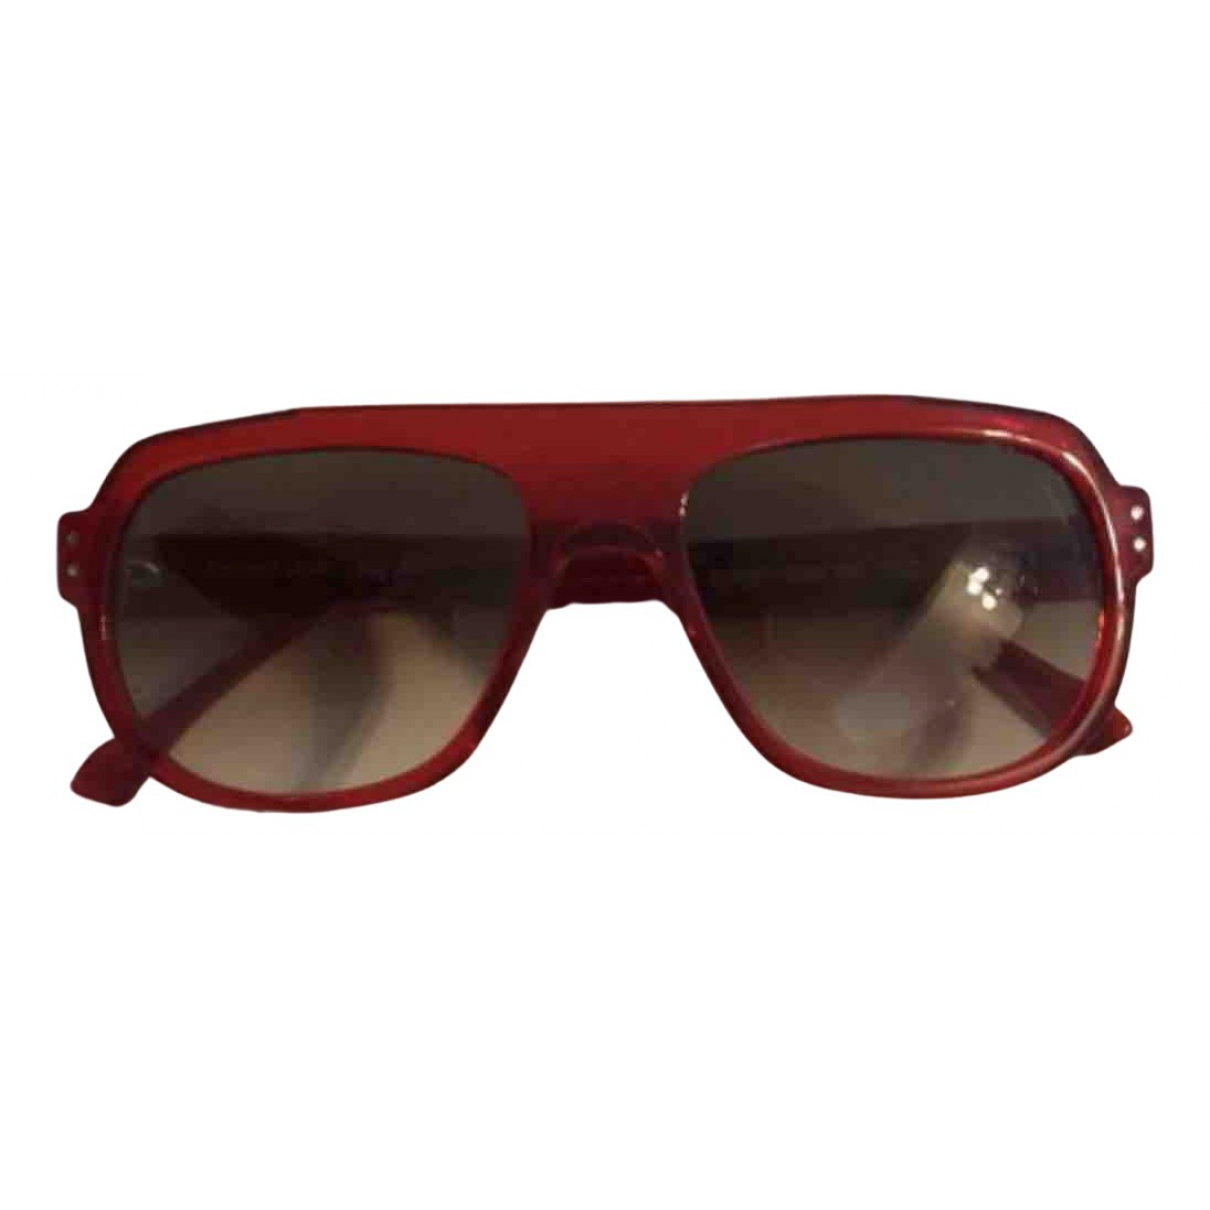 Thierry Lasry N Red Sunglasses for Men N